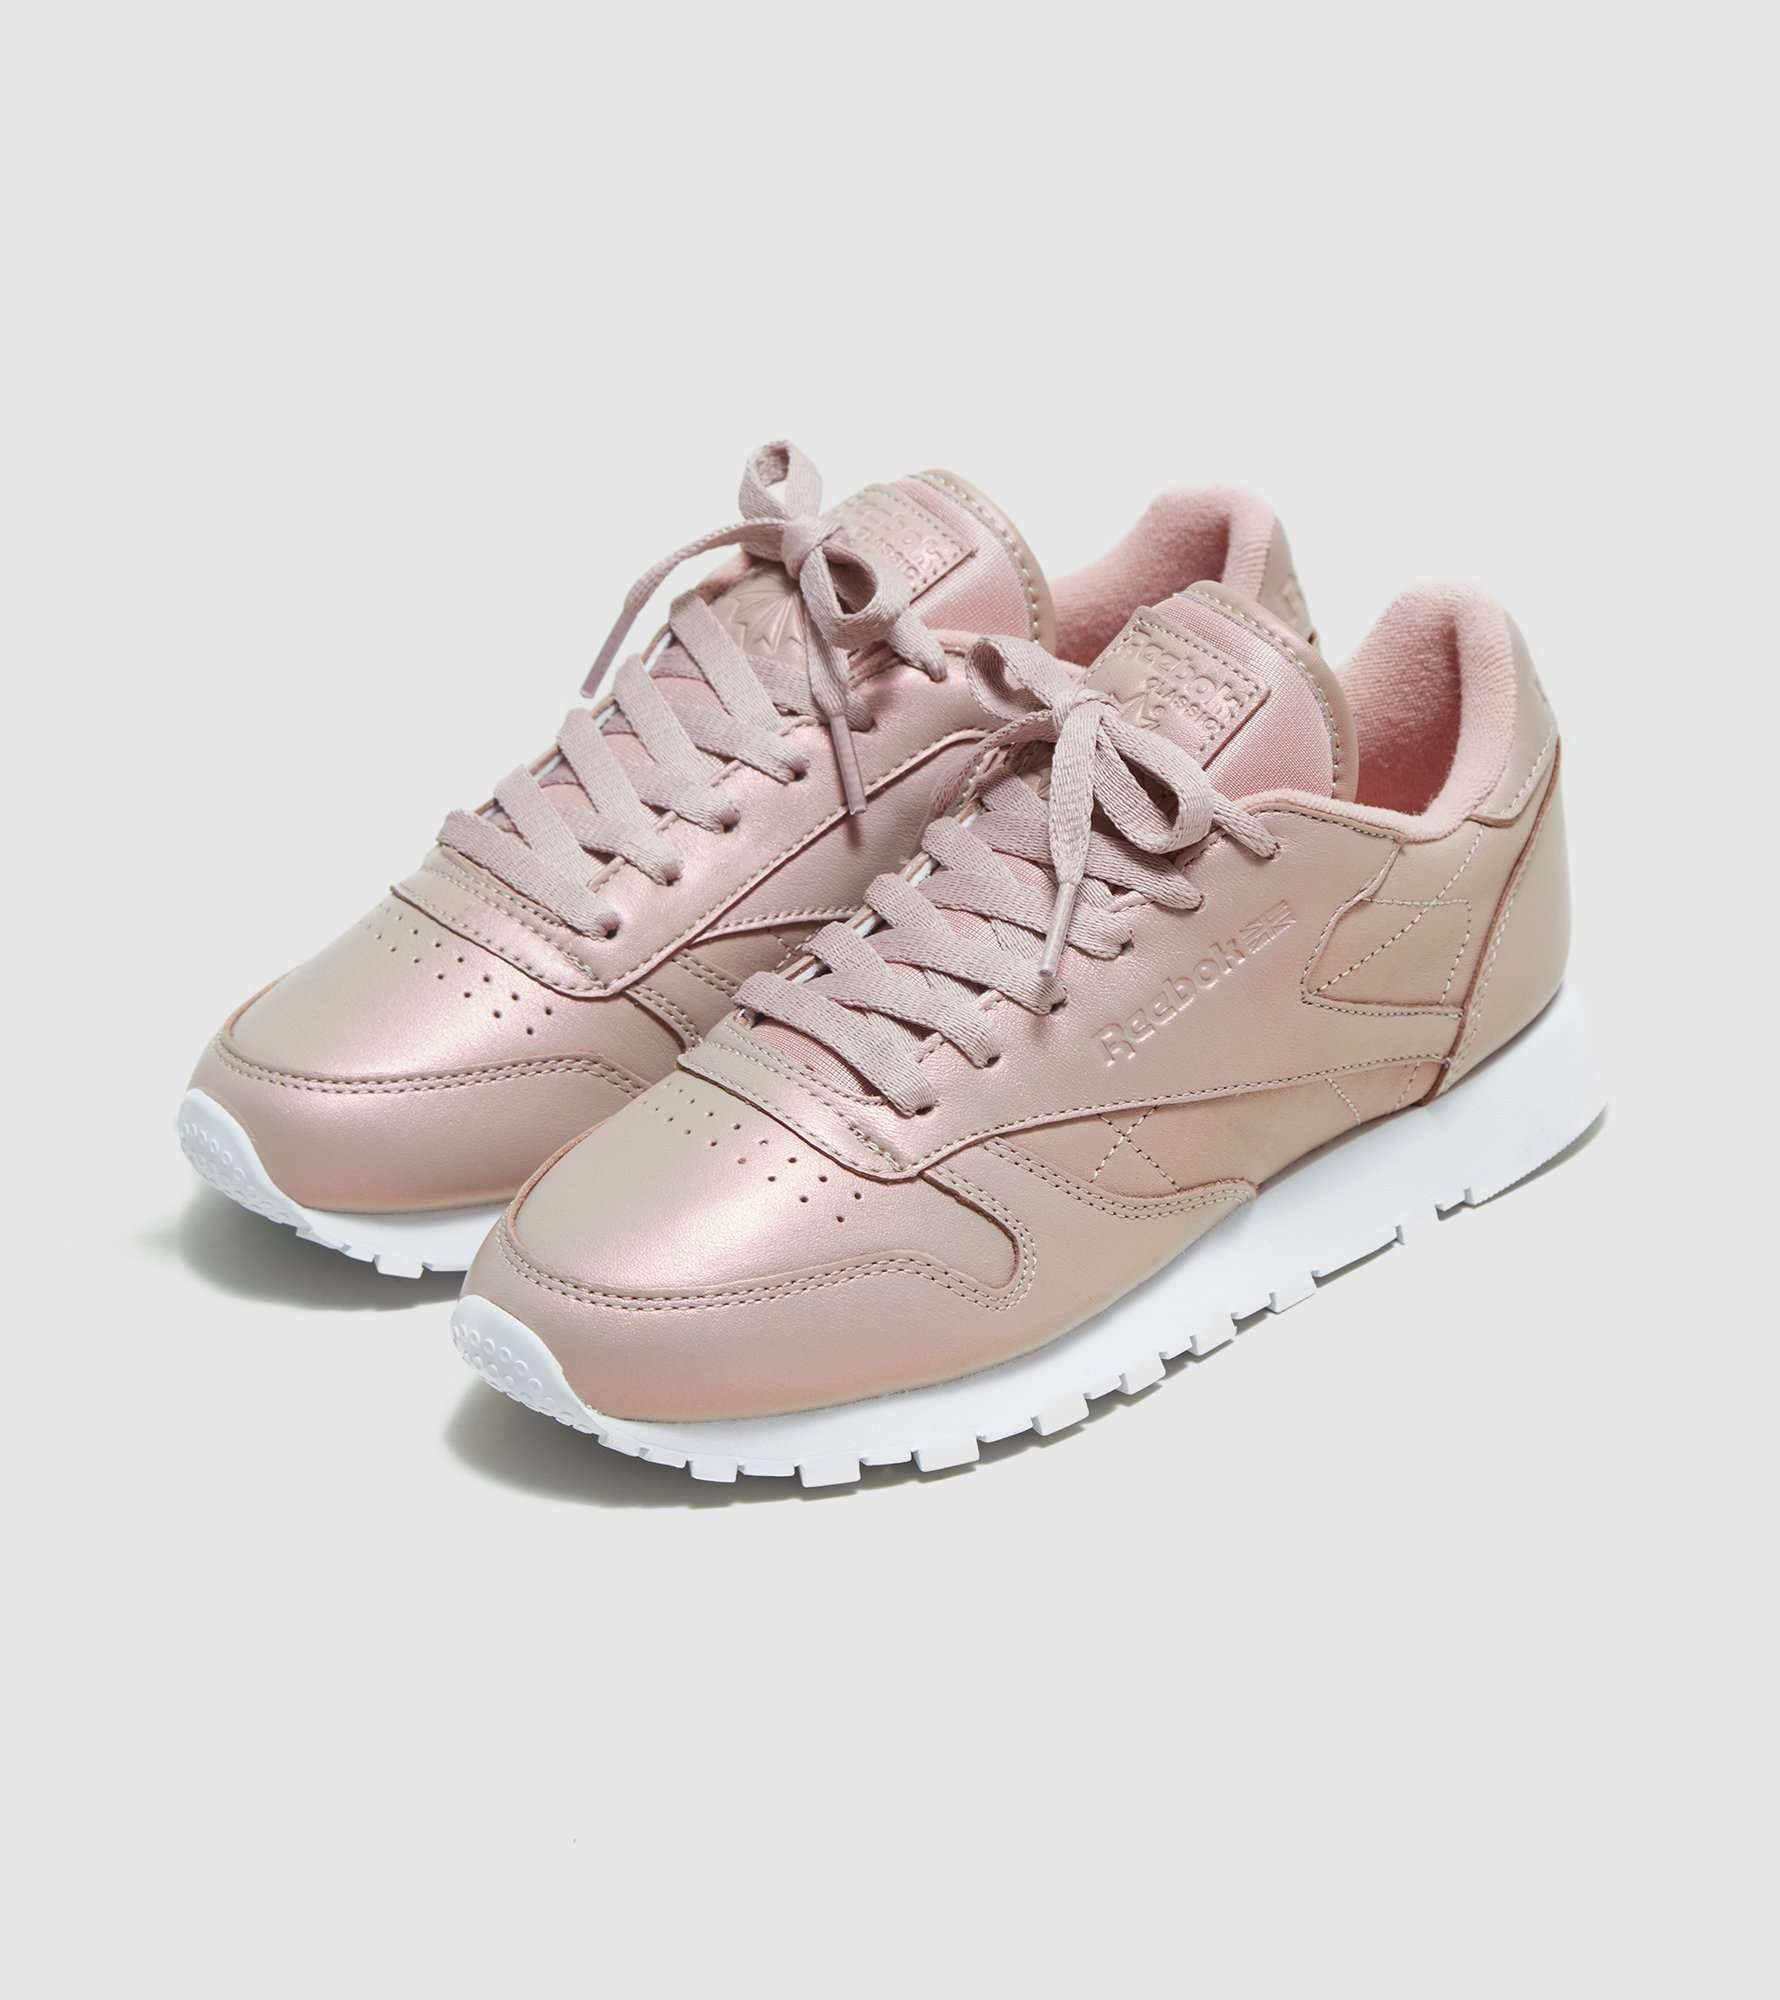 Reebok Classic Leather Pearlised Women's - find out more on our site. Find  the freshest